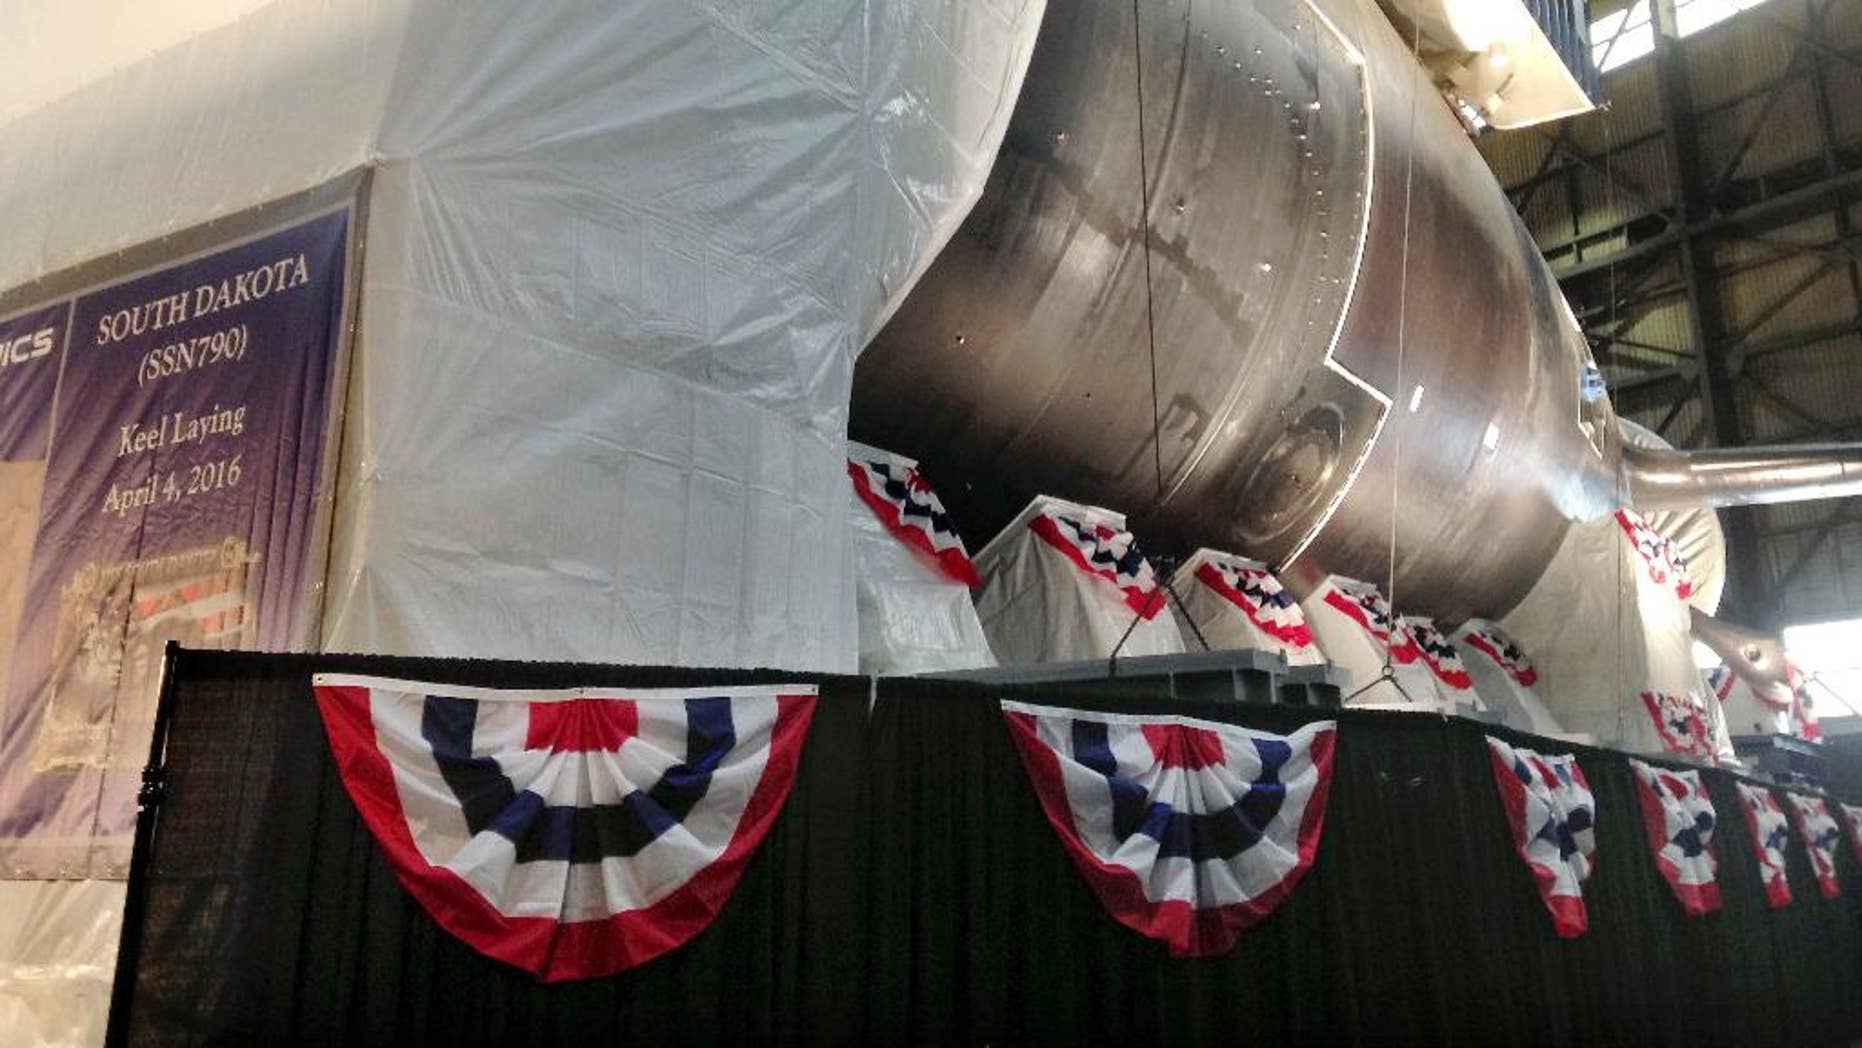 A module of the stern section of the nation's 17th Virginia-class attack submarine South Dakota is visible behind a backdrop during a ceremony at the manufacturing plant for General Dynamics' Electric Boat Monday, April 4, 2016, in North Kingstown, R.I. The keel of the nation's 17th Virginia-class attack submarine named for South Dakota is being laid at the manufacturing plant for General Dynamics' Electric Boat. The submarine doesn't have a traditional keel running the length of the ship, but is built in modules. (AP Photo/Jennifer McDermott)